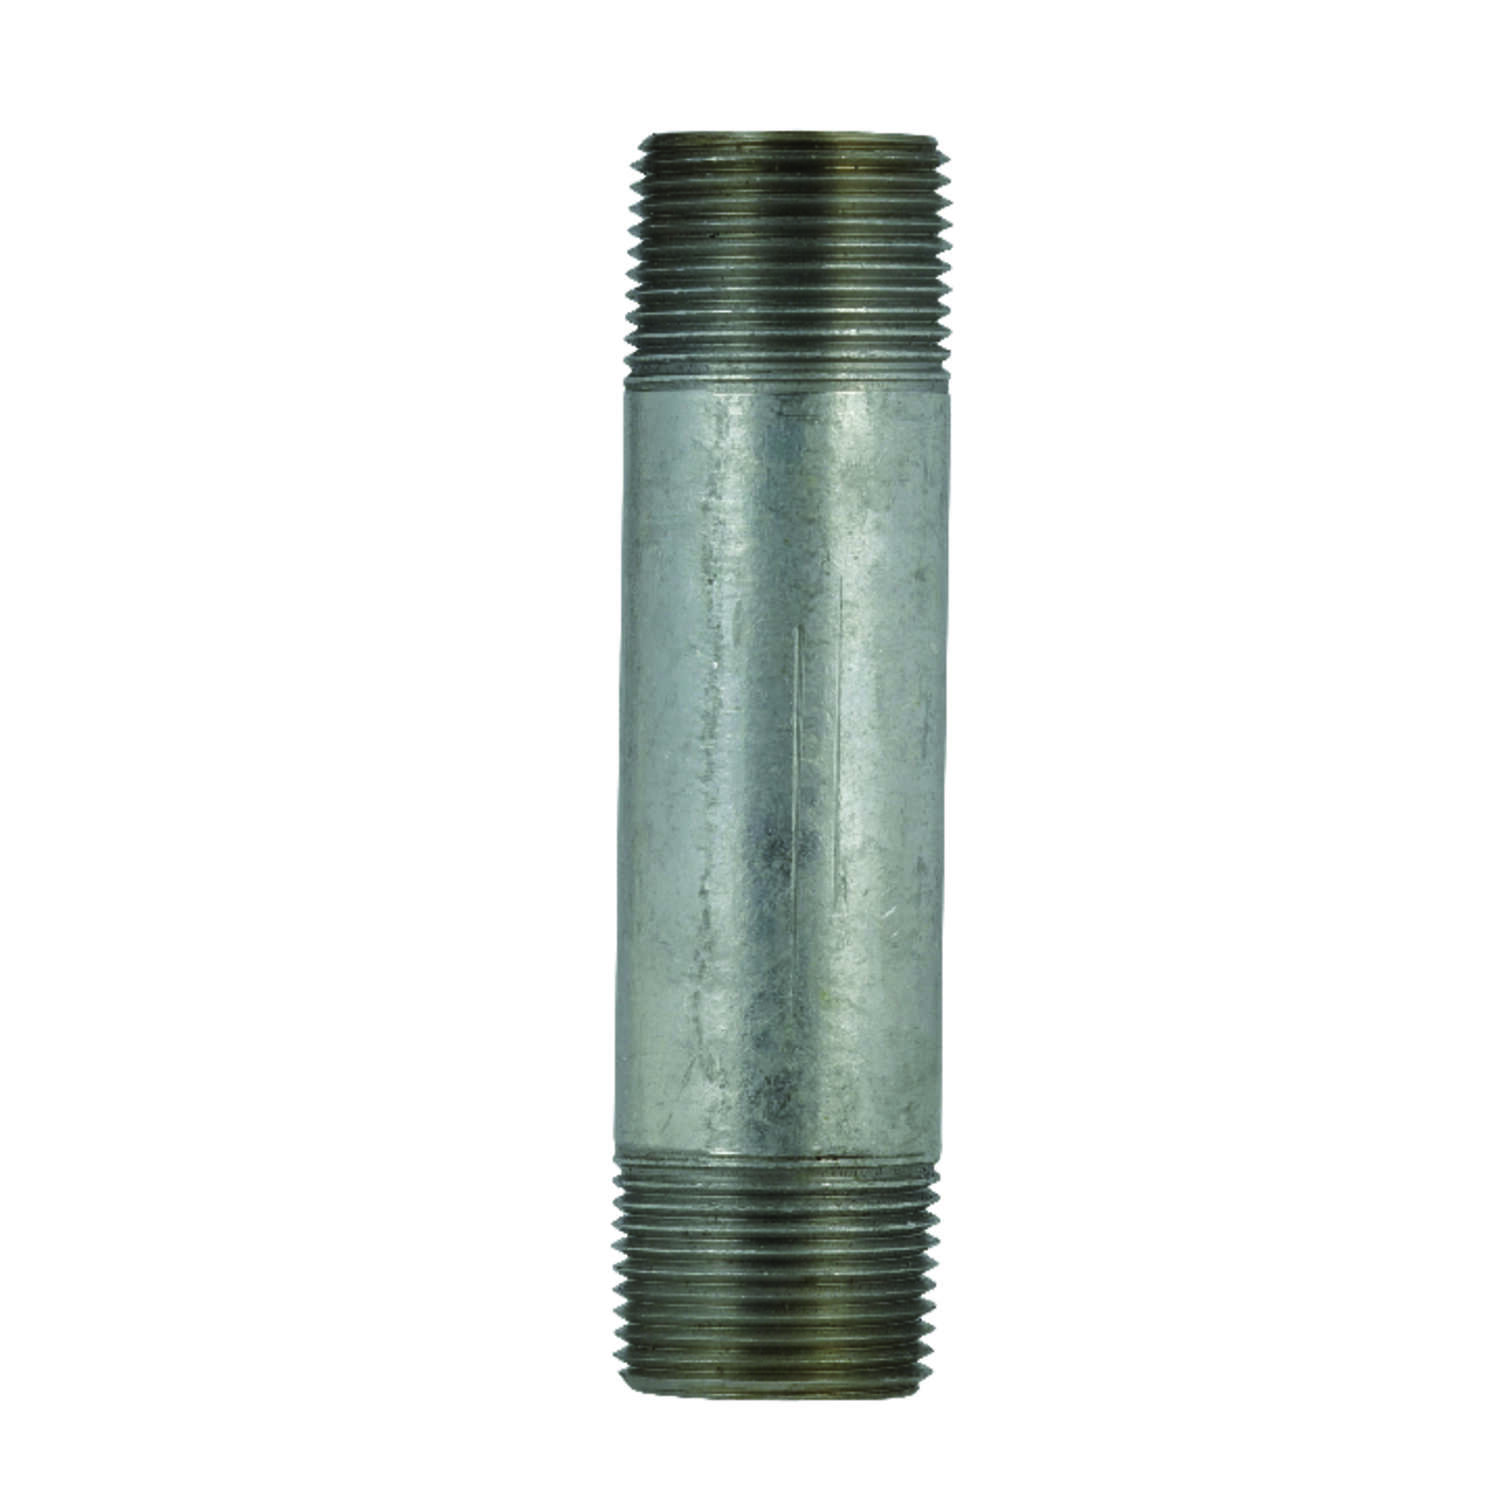 BK Products Southland 4 in. MPT x 4 in. Dia. x 6 in. L MPT Galvanized Steel Nipple